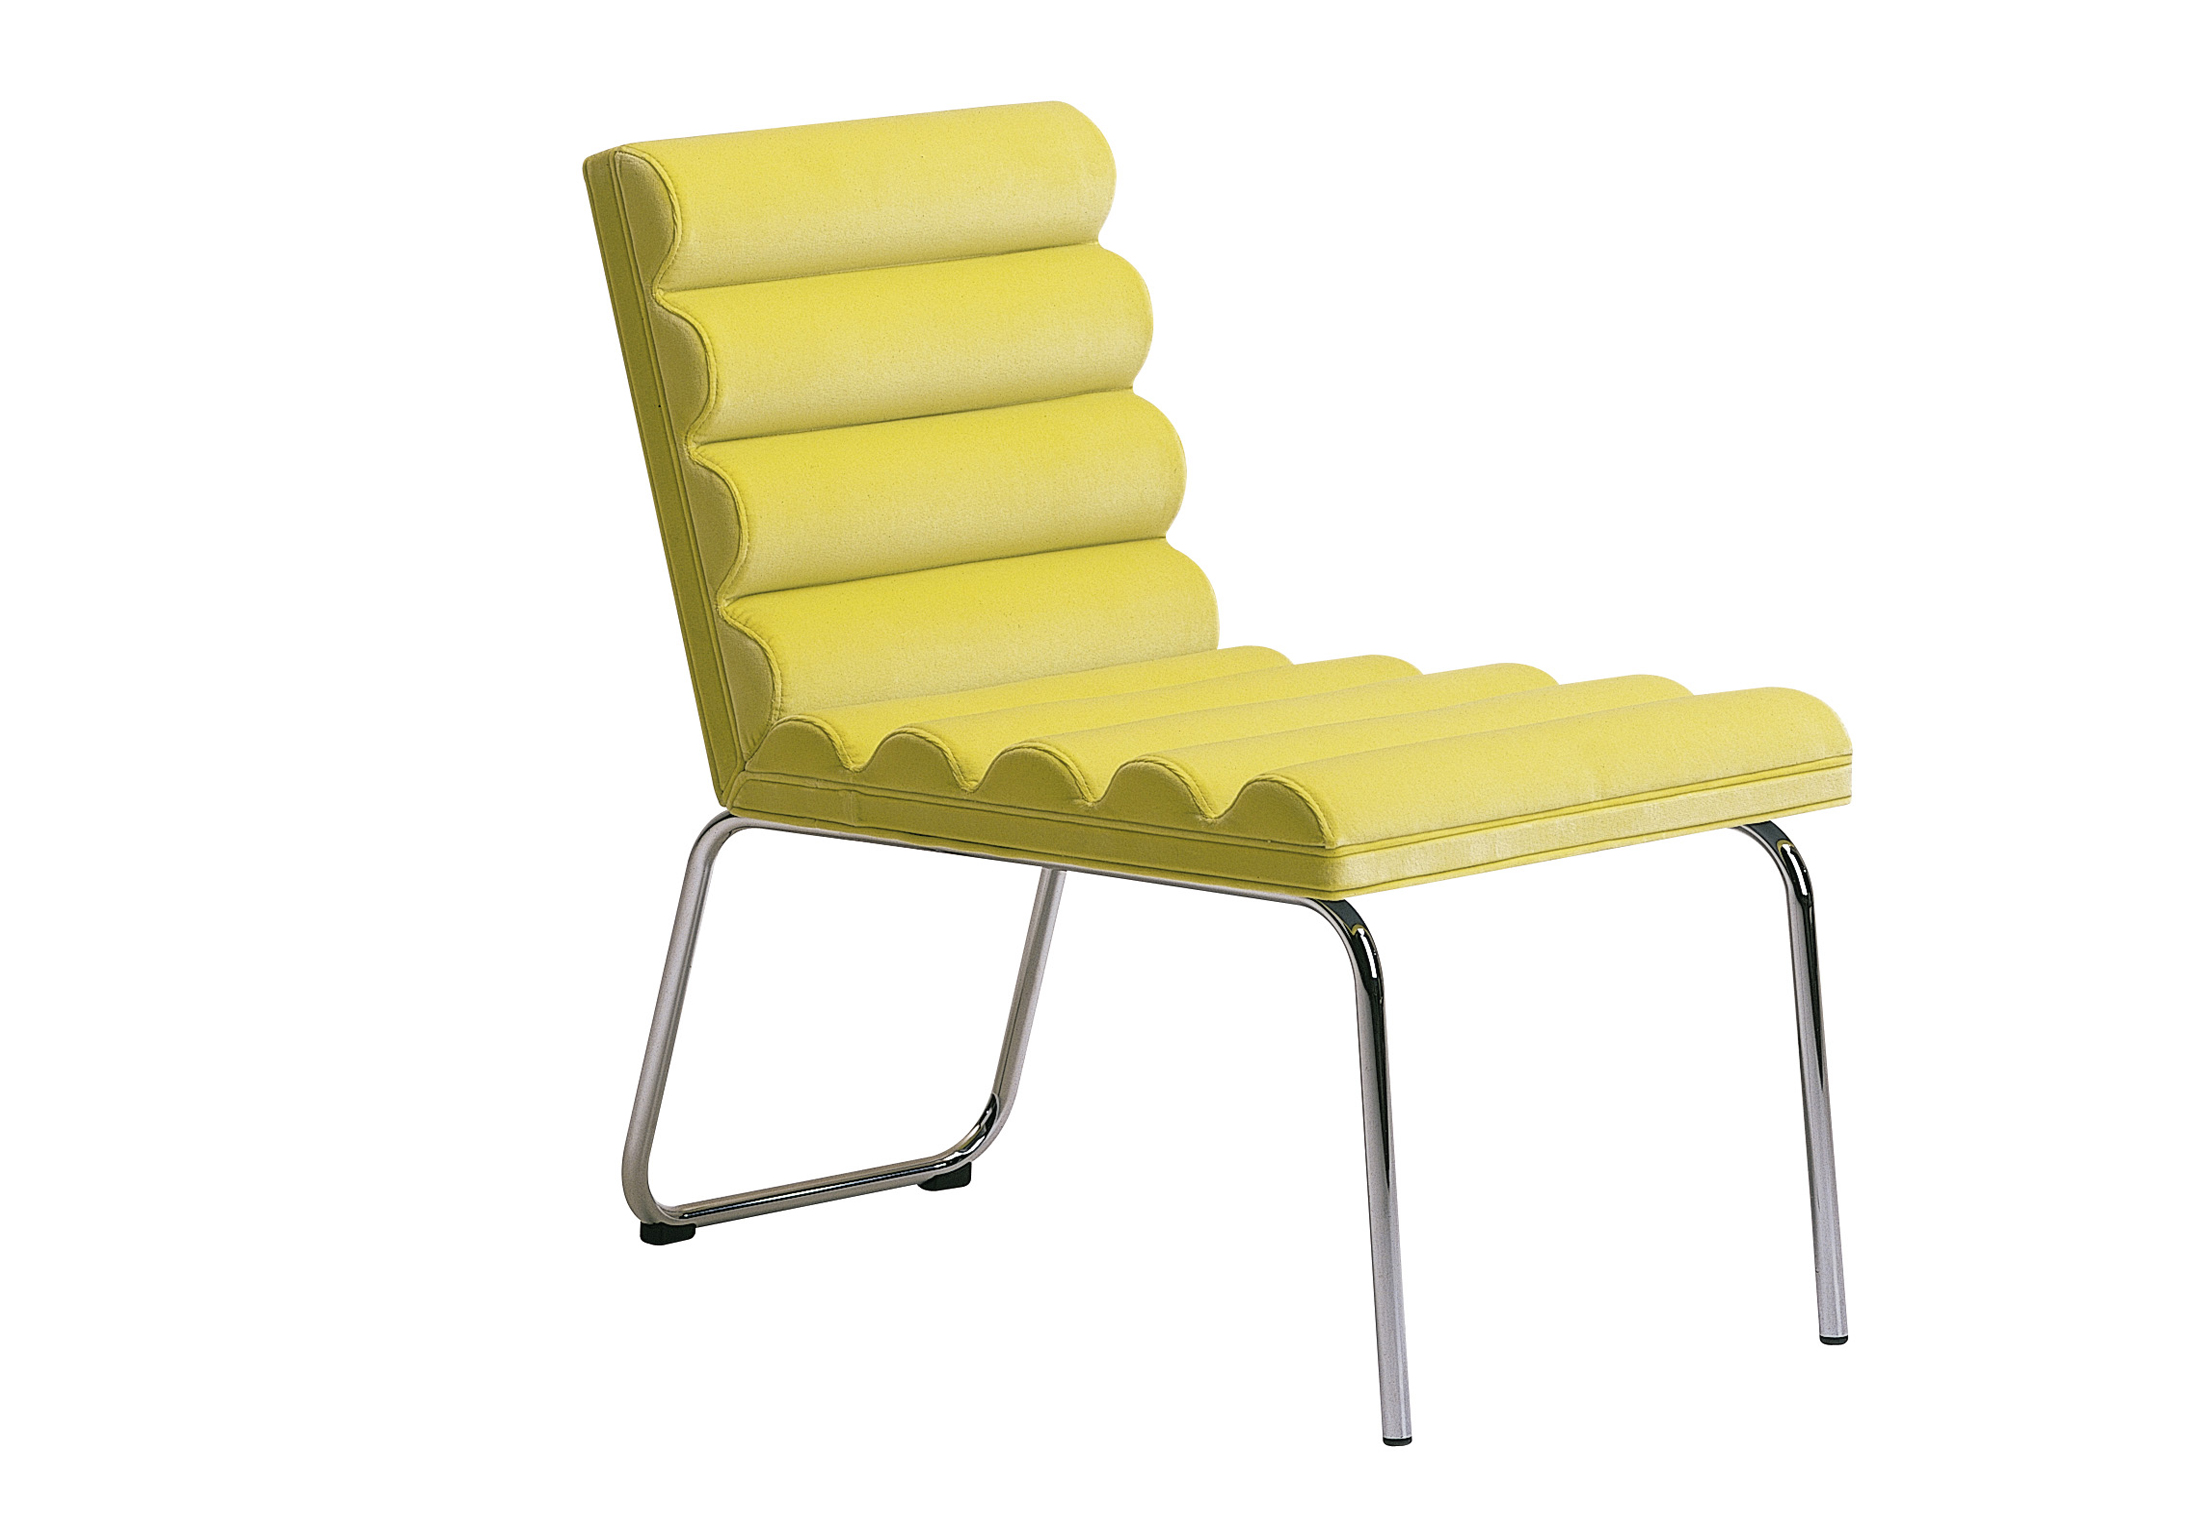 Chicago easychair by Lammhults STYLEPARK